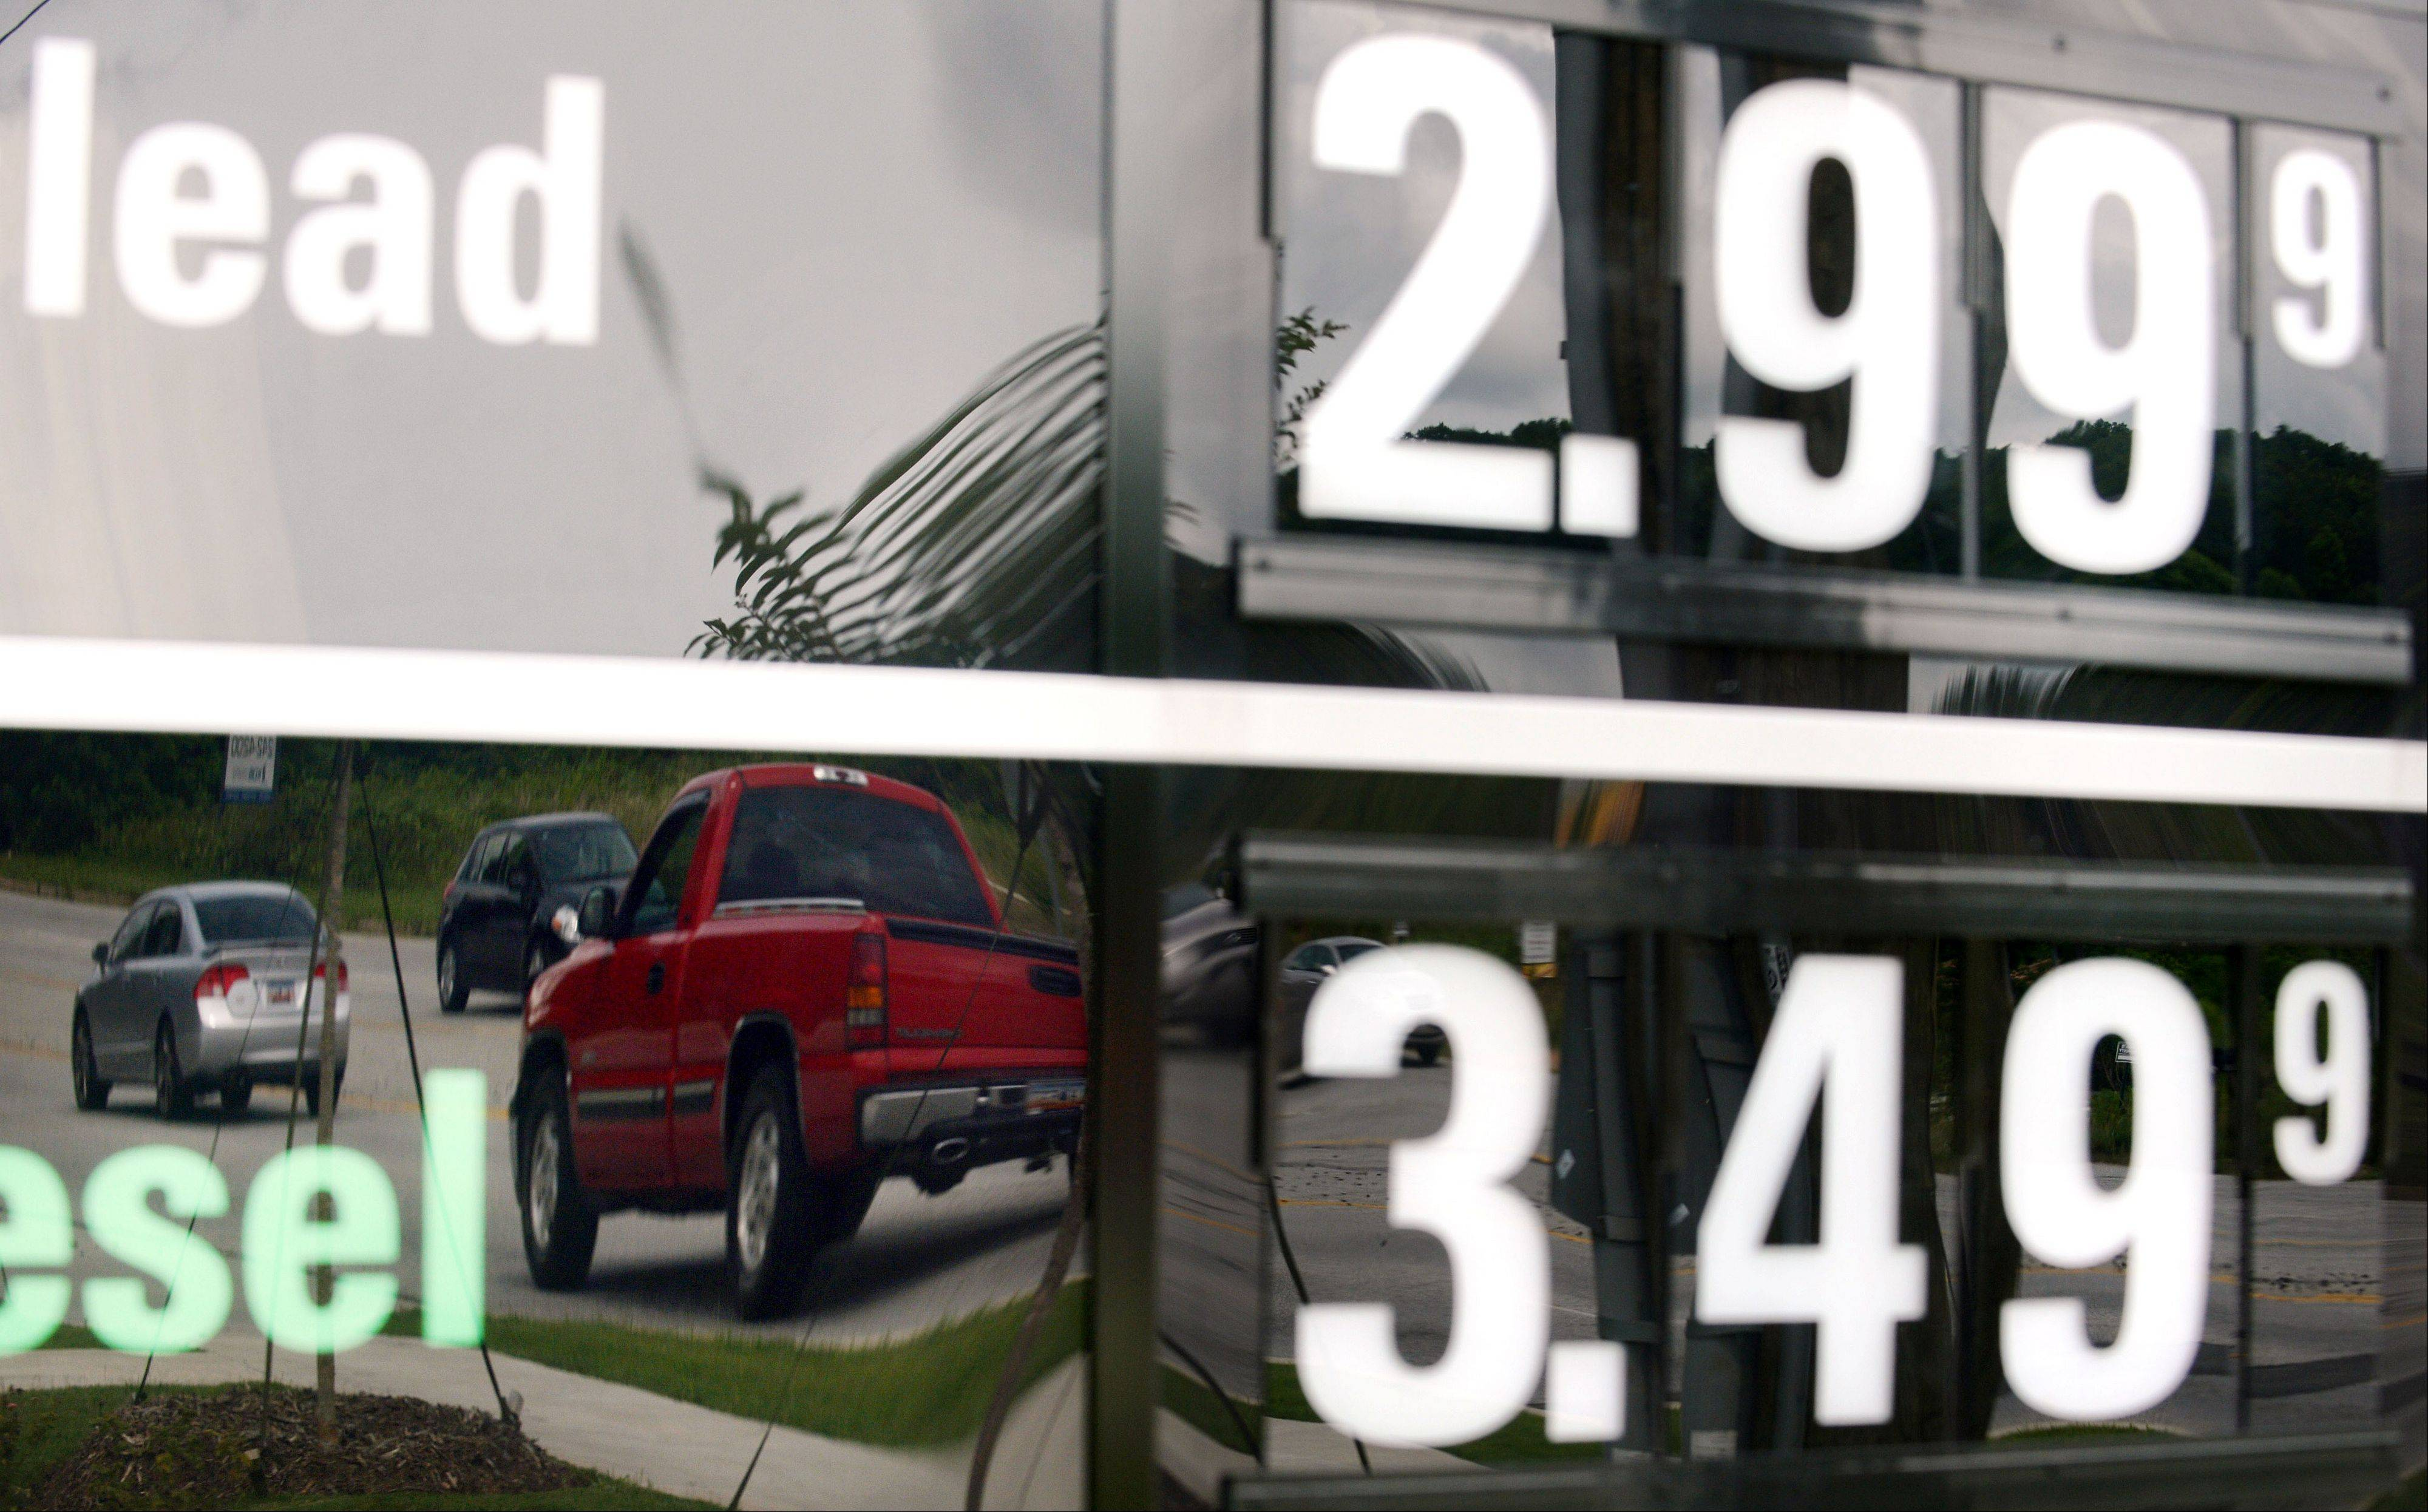 Vehicles are reflected in a sign advertising unleaded gas for $2.99 at a QuikTrip station at the corner of Woodruff Rd. and Verdae Blvd. in Greenville, S.C. U.S. consumer prices rose only slightly last month as gas increased more slowly. Overall, the figures showed that inflation remains mild.